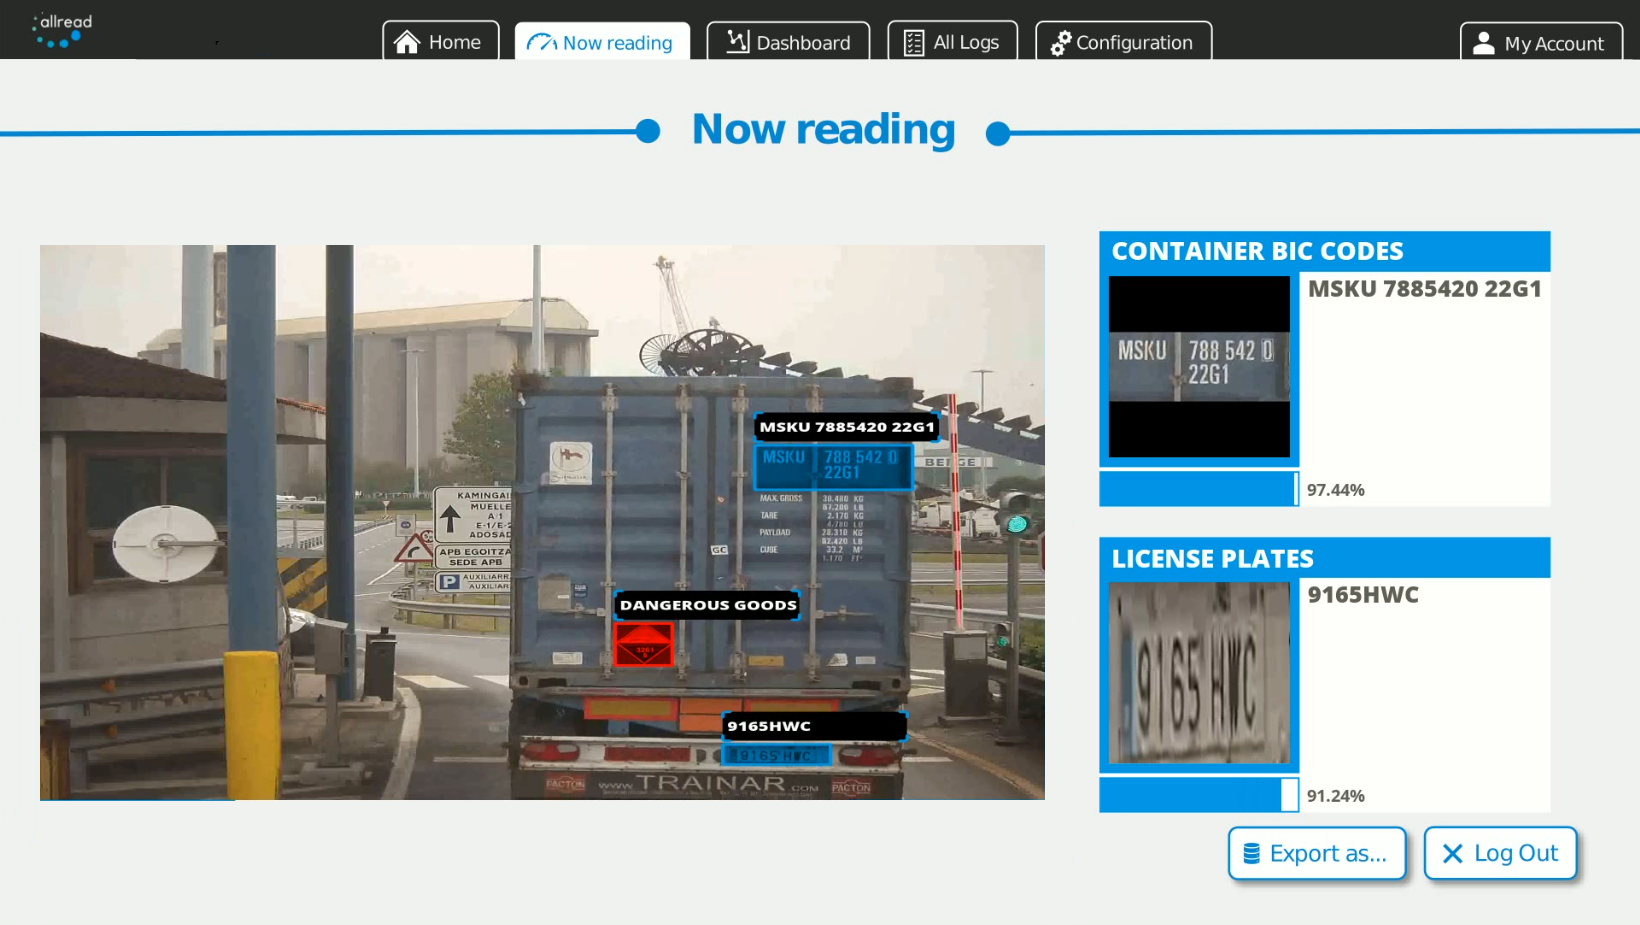 License plates, ADR goods and containers ID and ISO codes spotting and reading from trucks.